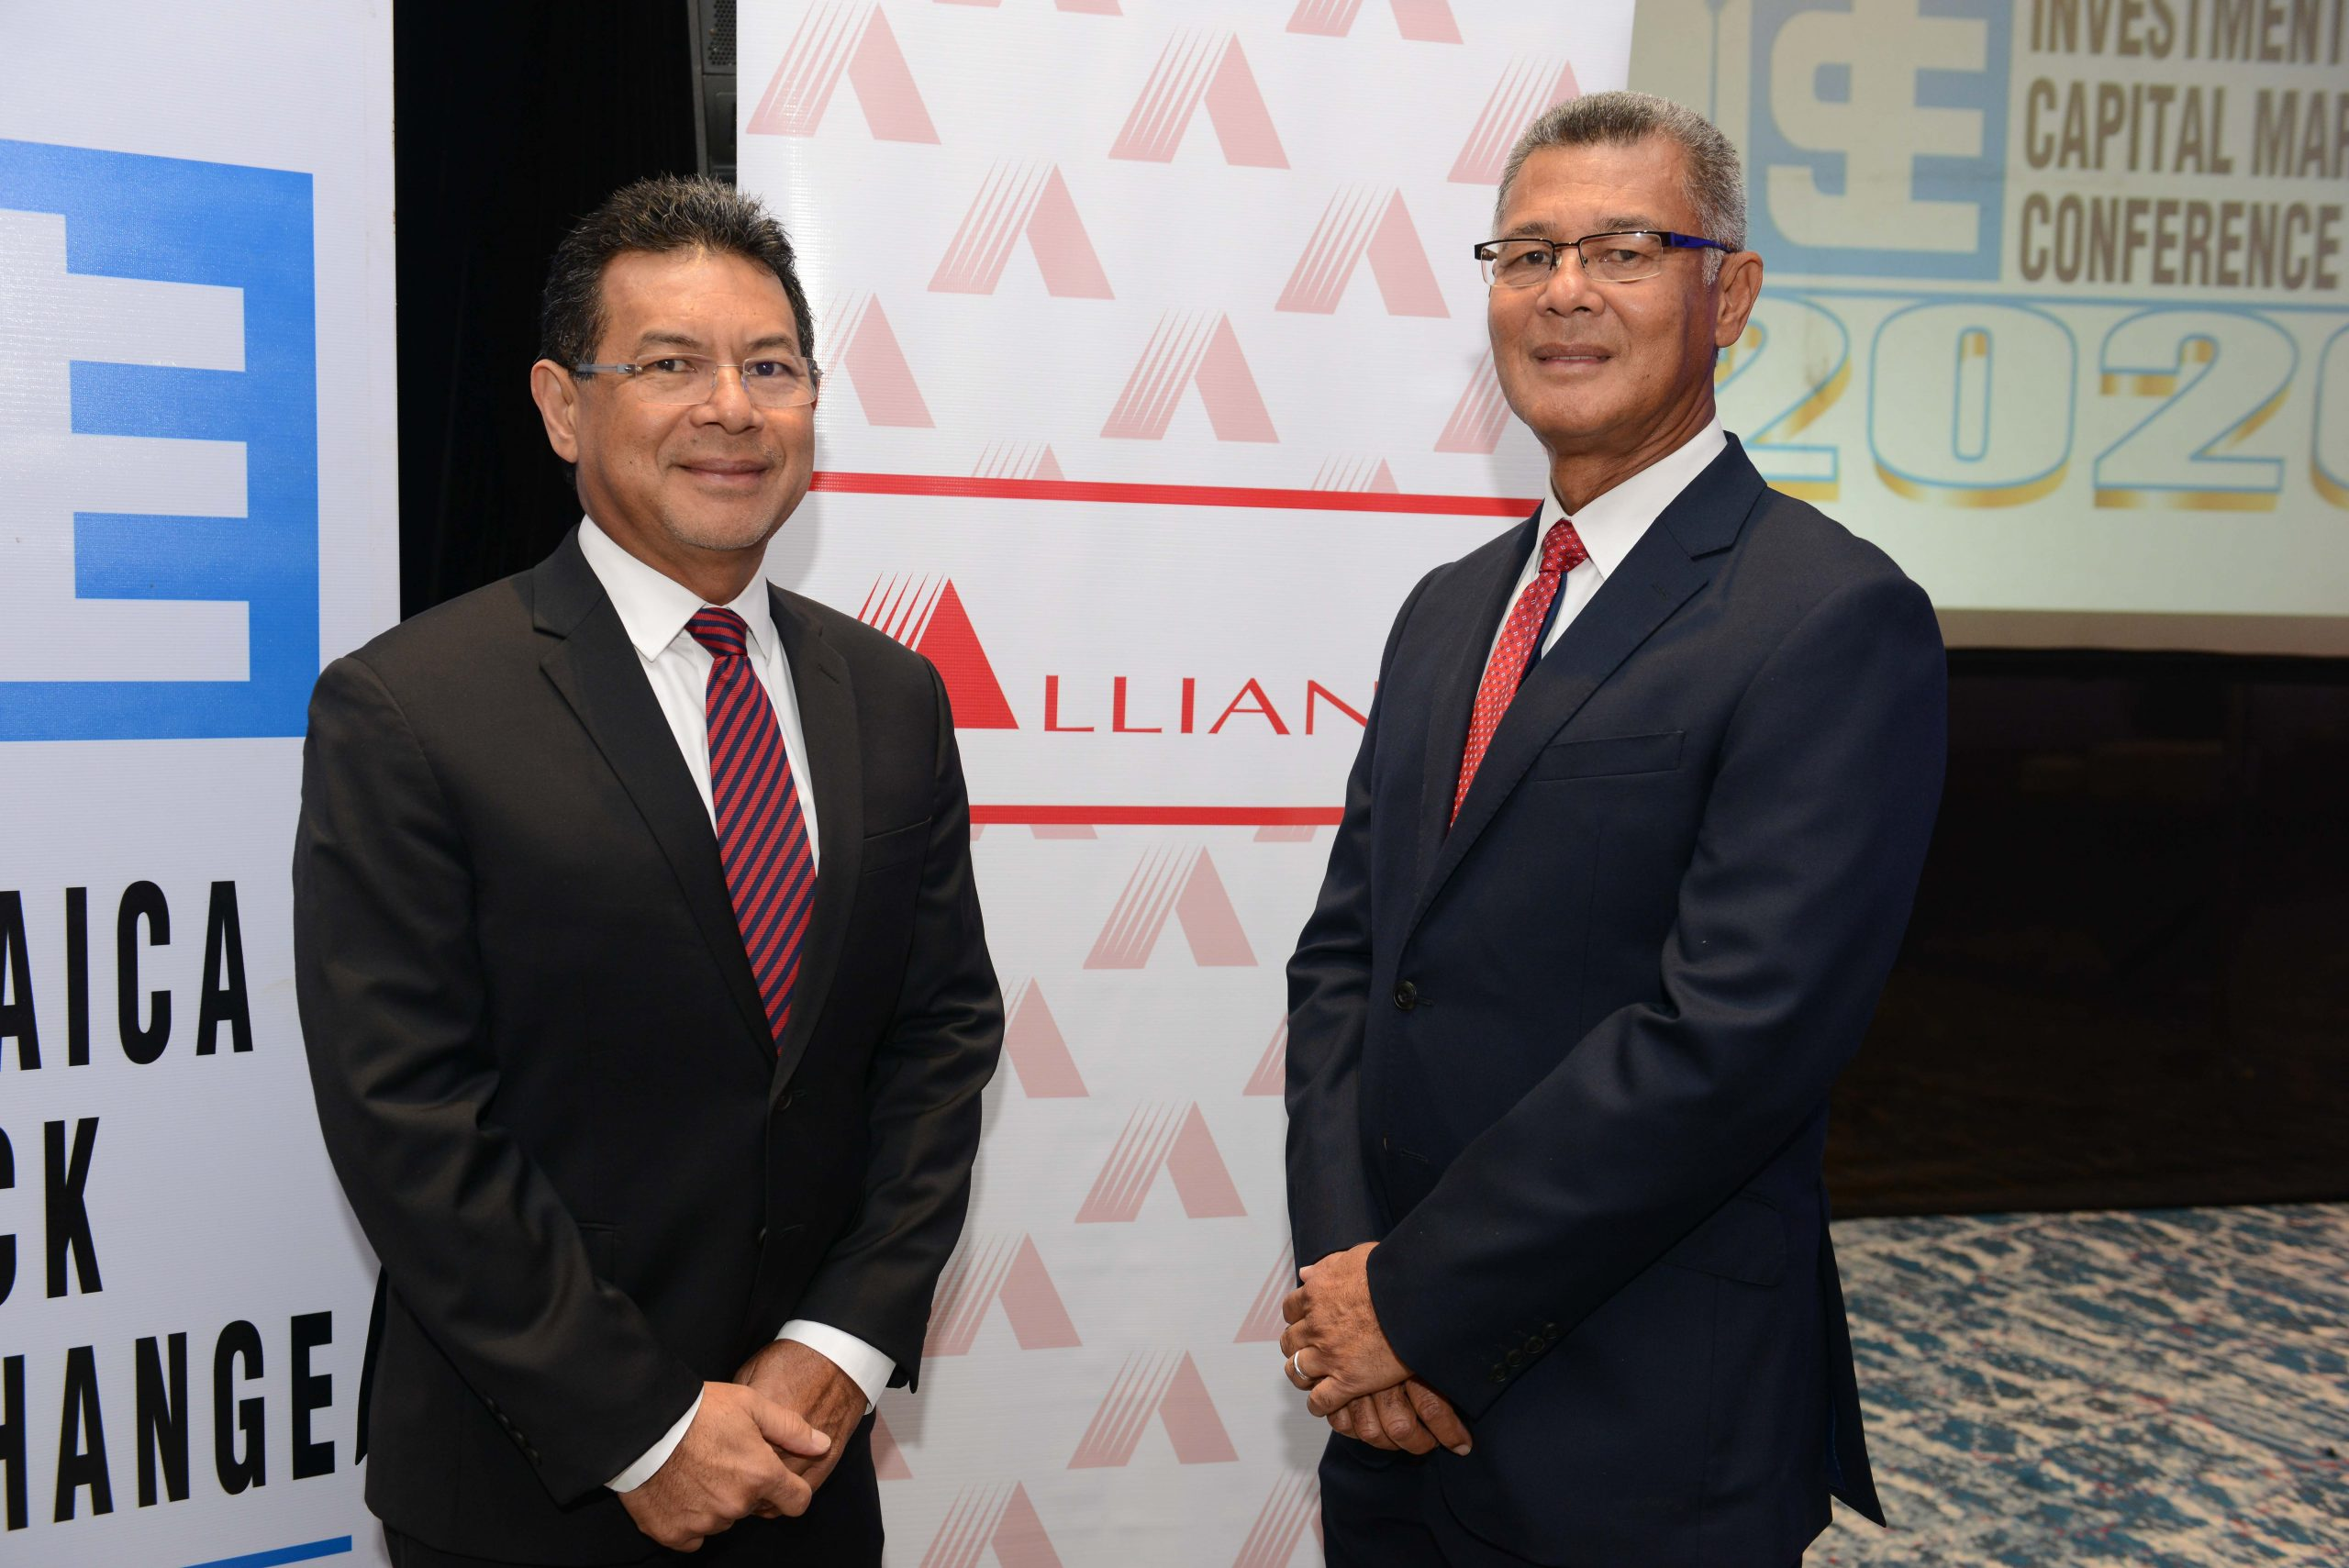 Alliance IPO to top $500m</p> <div>31 Jan, 2020</div> <p>